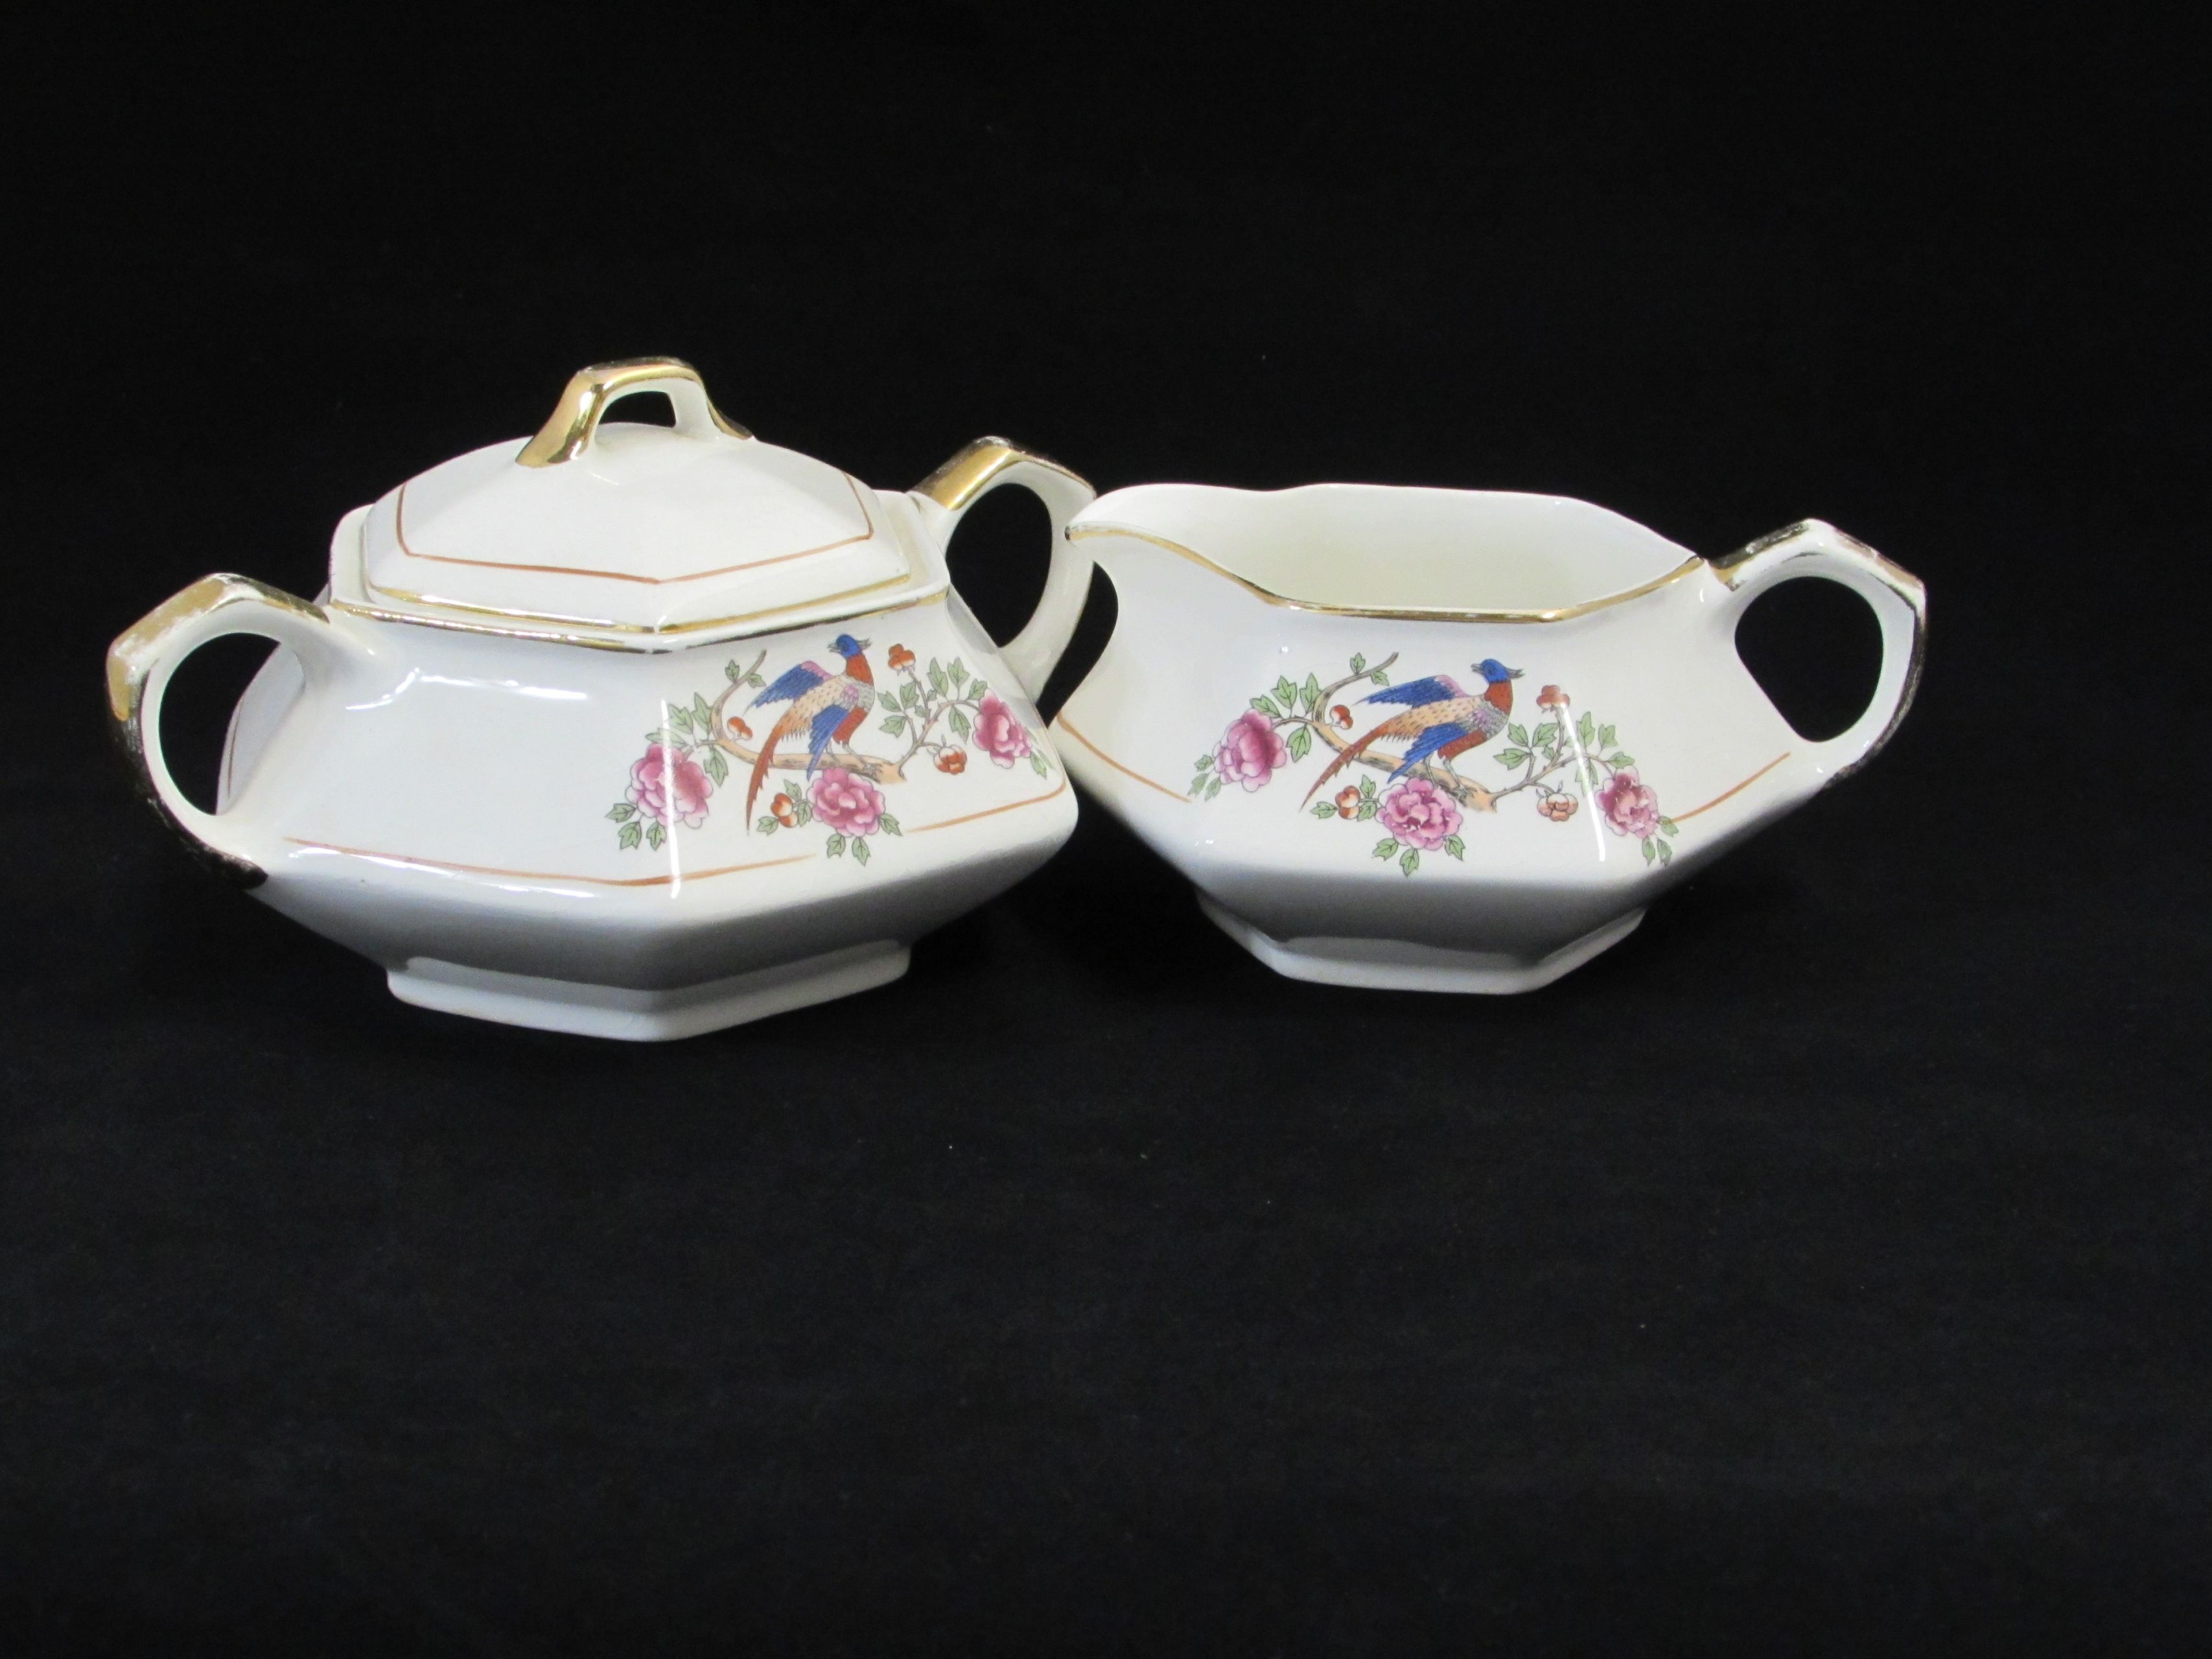 """F.C. Co. Martha Washington Creamer and Sugar. This sugar and creamer set is in the Martha Washington pattern. It features a pheasant on a tree branch. F.C. Co dates to around the late 1800's to the early 1900's. This set does have a lot of wear and crazing. The creamer is approx. 5 1/4"""" from spout to handle and stands approx. 2 1/2"""" tall. The sugar is approx. 3 1/2"""" tall x 7"""" across the handles. The set is in good condition with no chips or cracks. There is crazing present and wear…"""